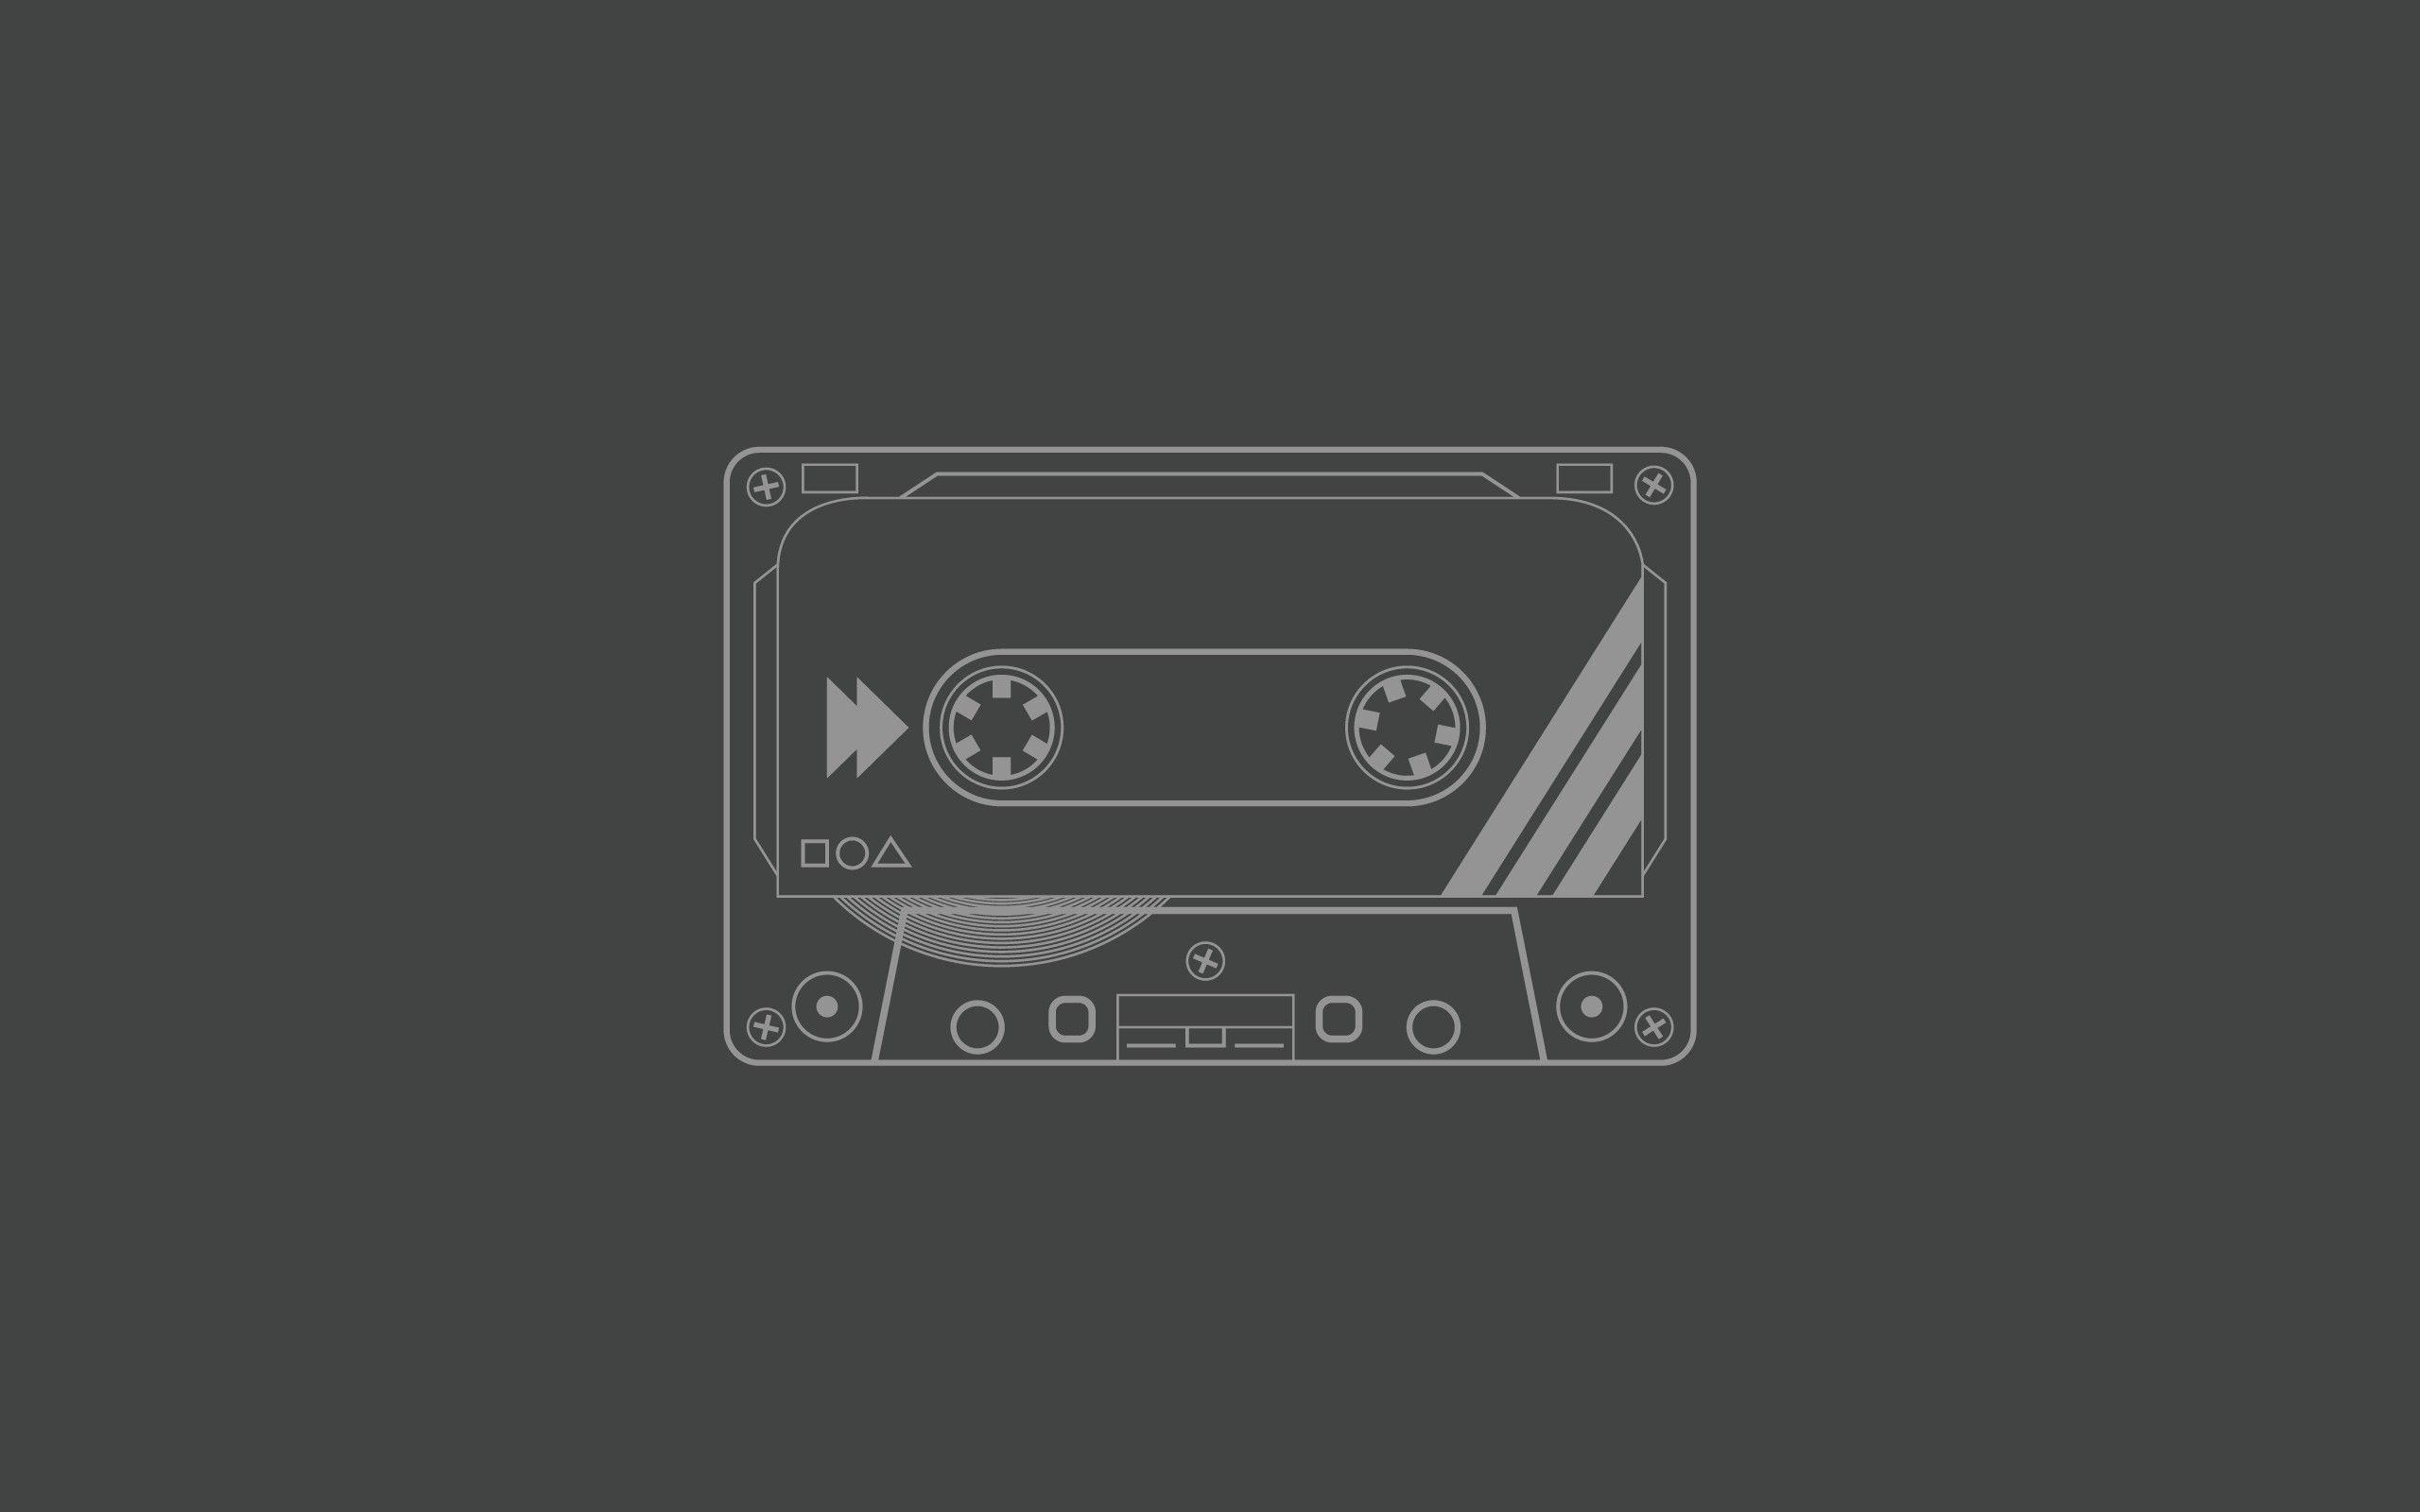 Artwork Tape Cassettes Cassettes Minimalism Wallpap Desktop Wallpaper Simple Laptop Wallpaper Desktop Wallpapers Computer Wallpaper Desktop Wallpapers